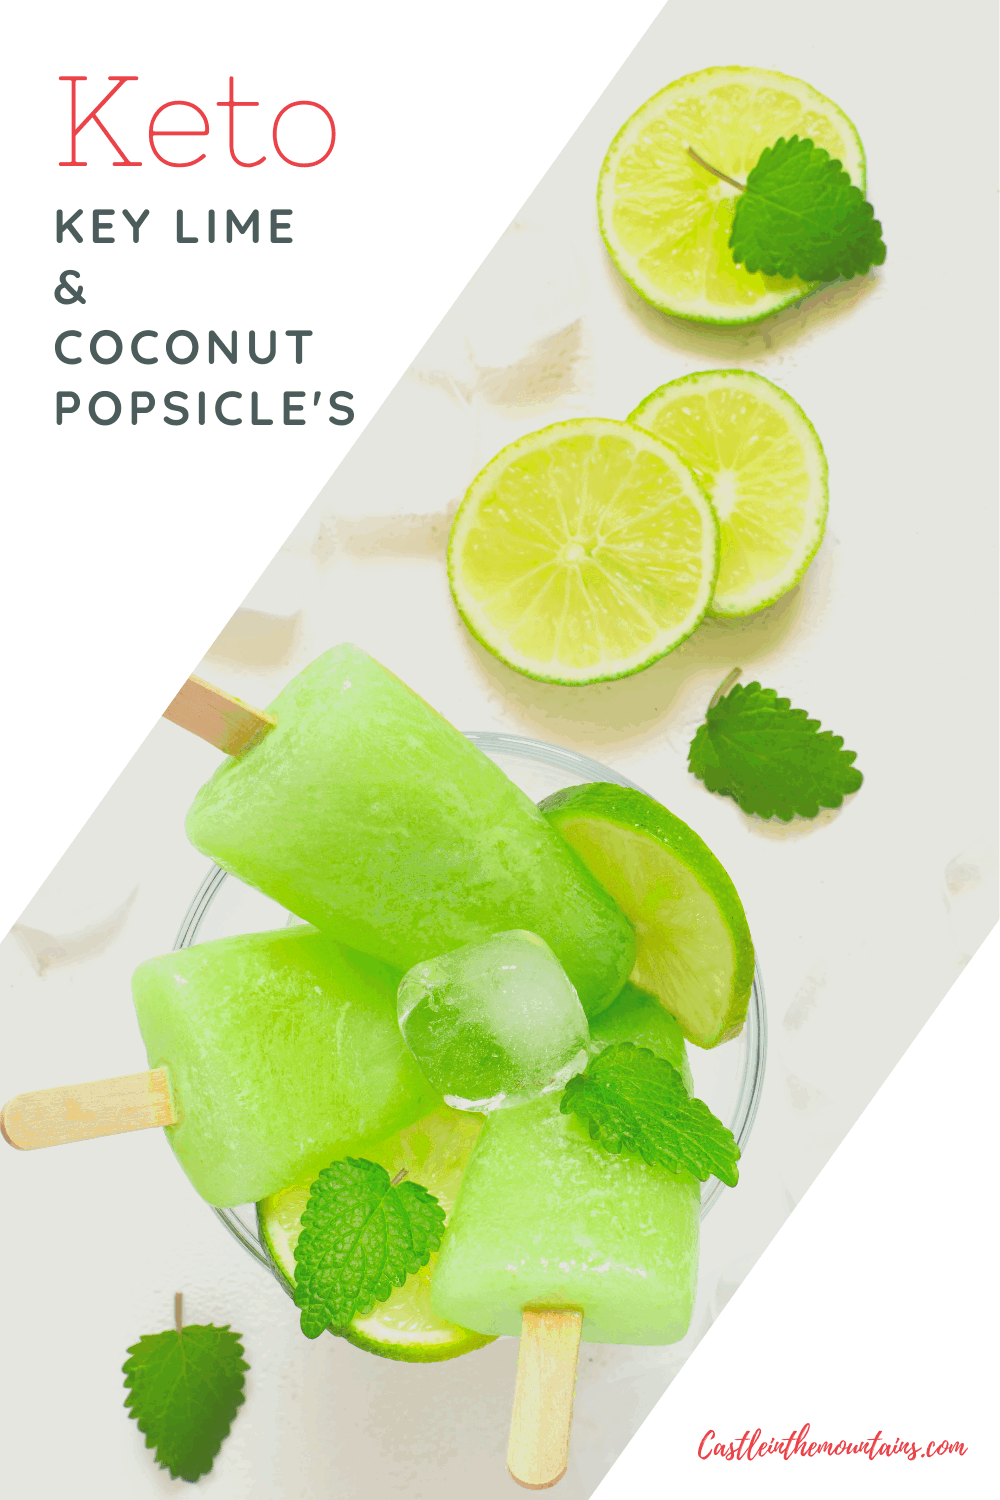 Keto Key Lime Coconut Popsicles